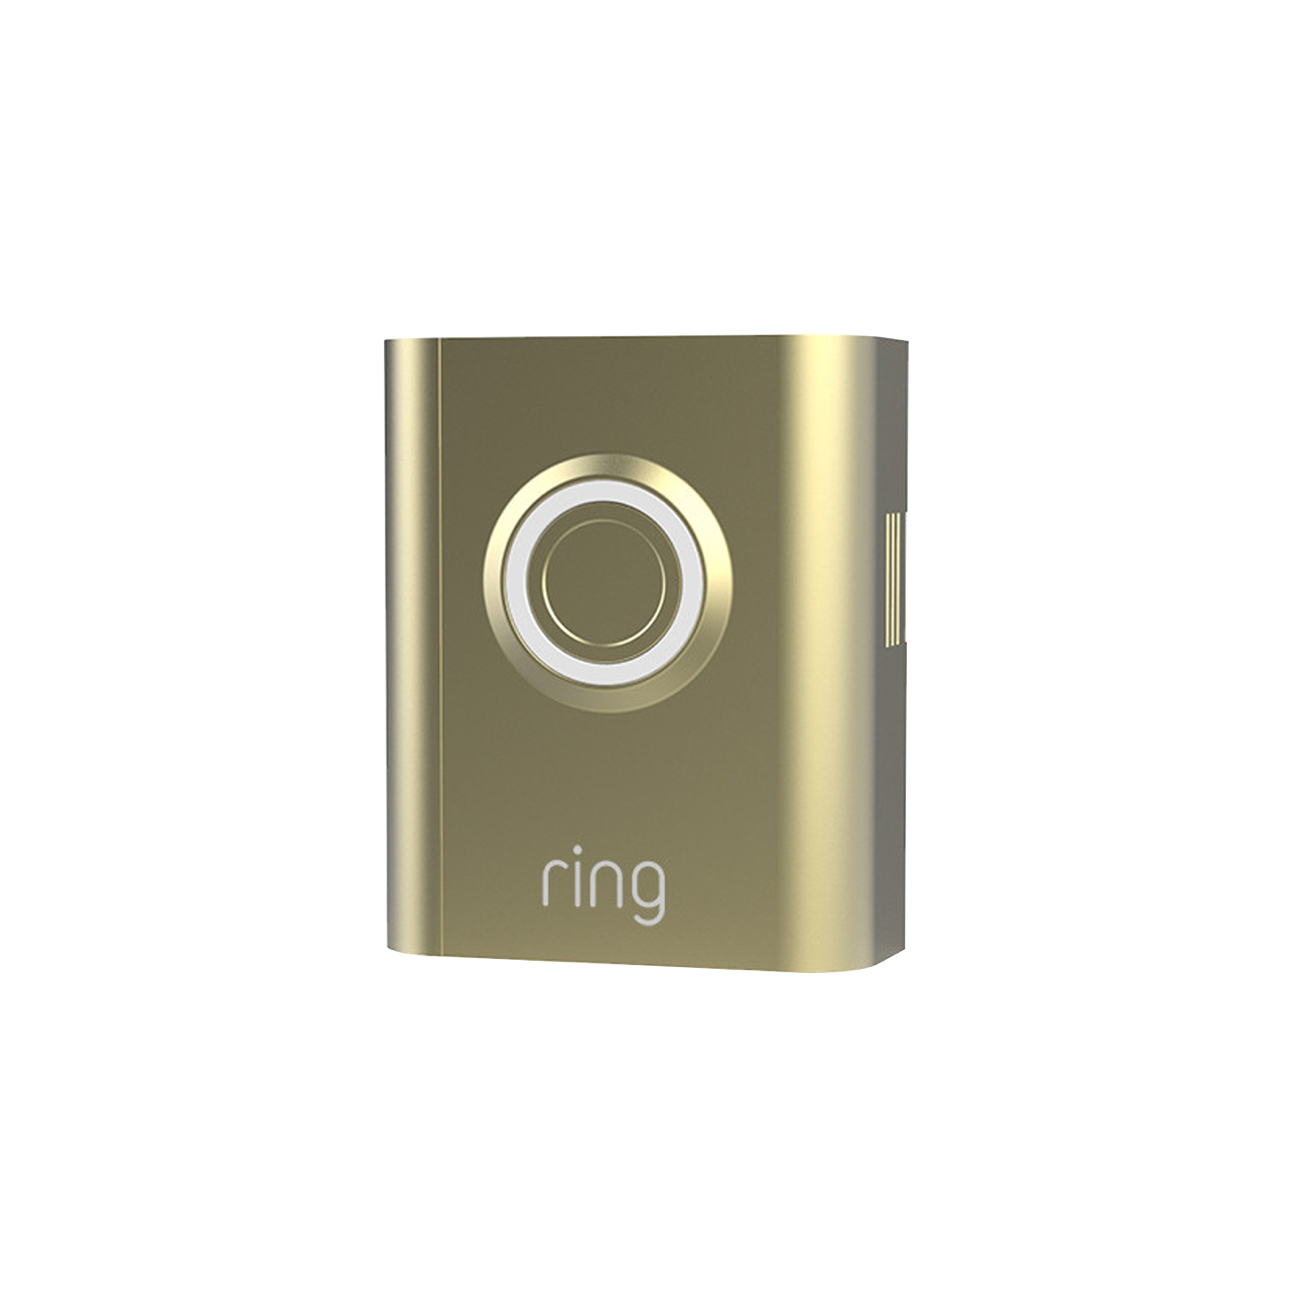 Mascherine intercambiabili (Video Doorbell 3 o Video Doorbell 3 Plus)